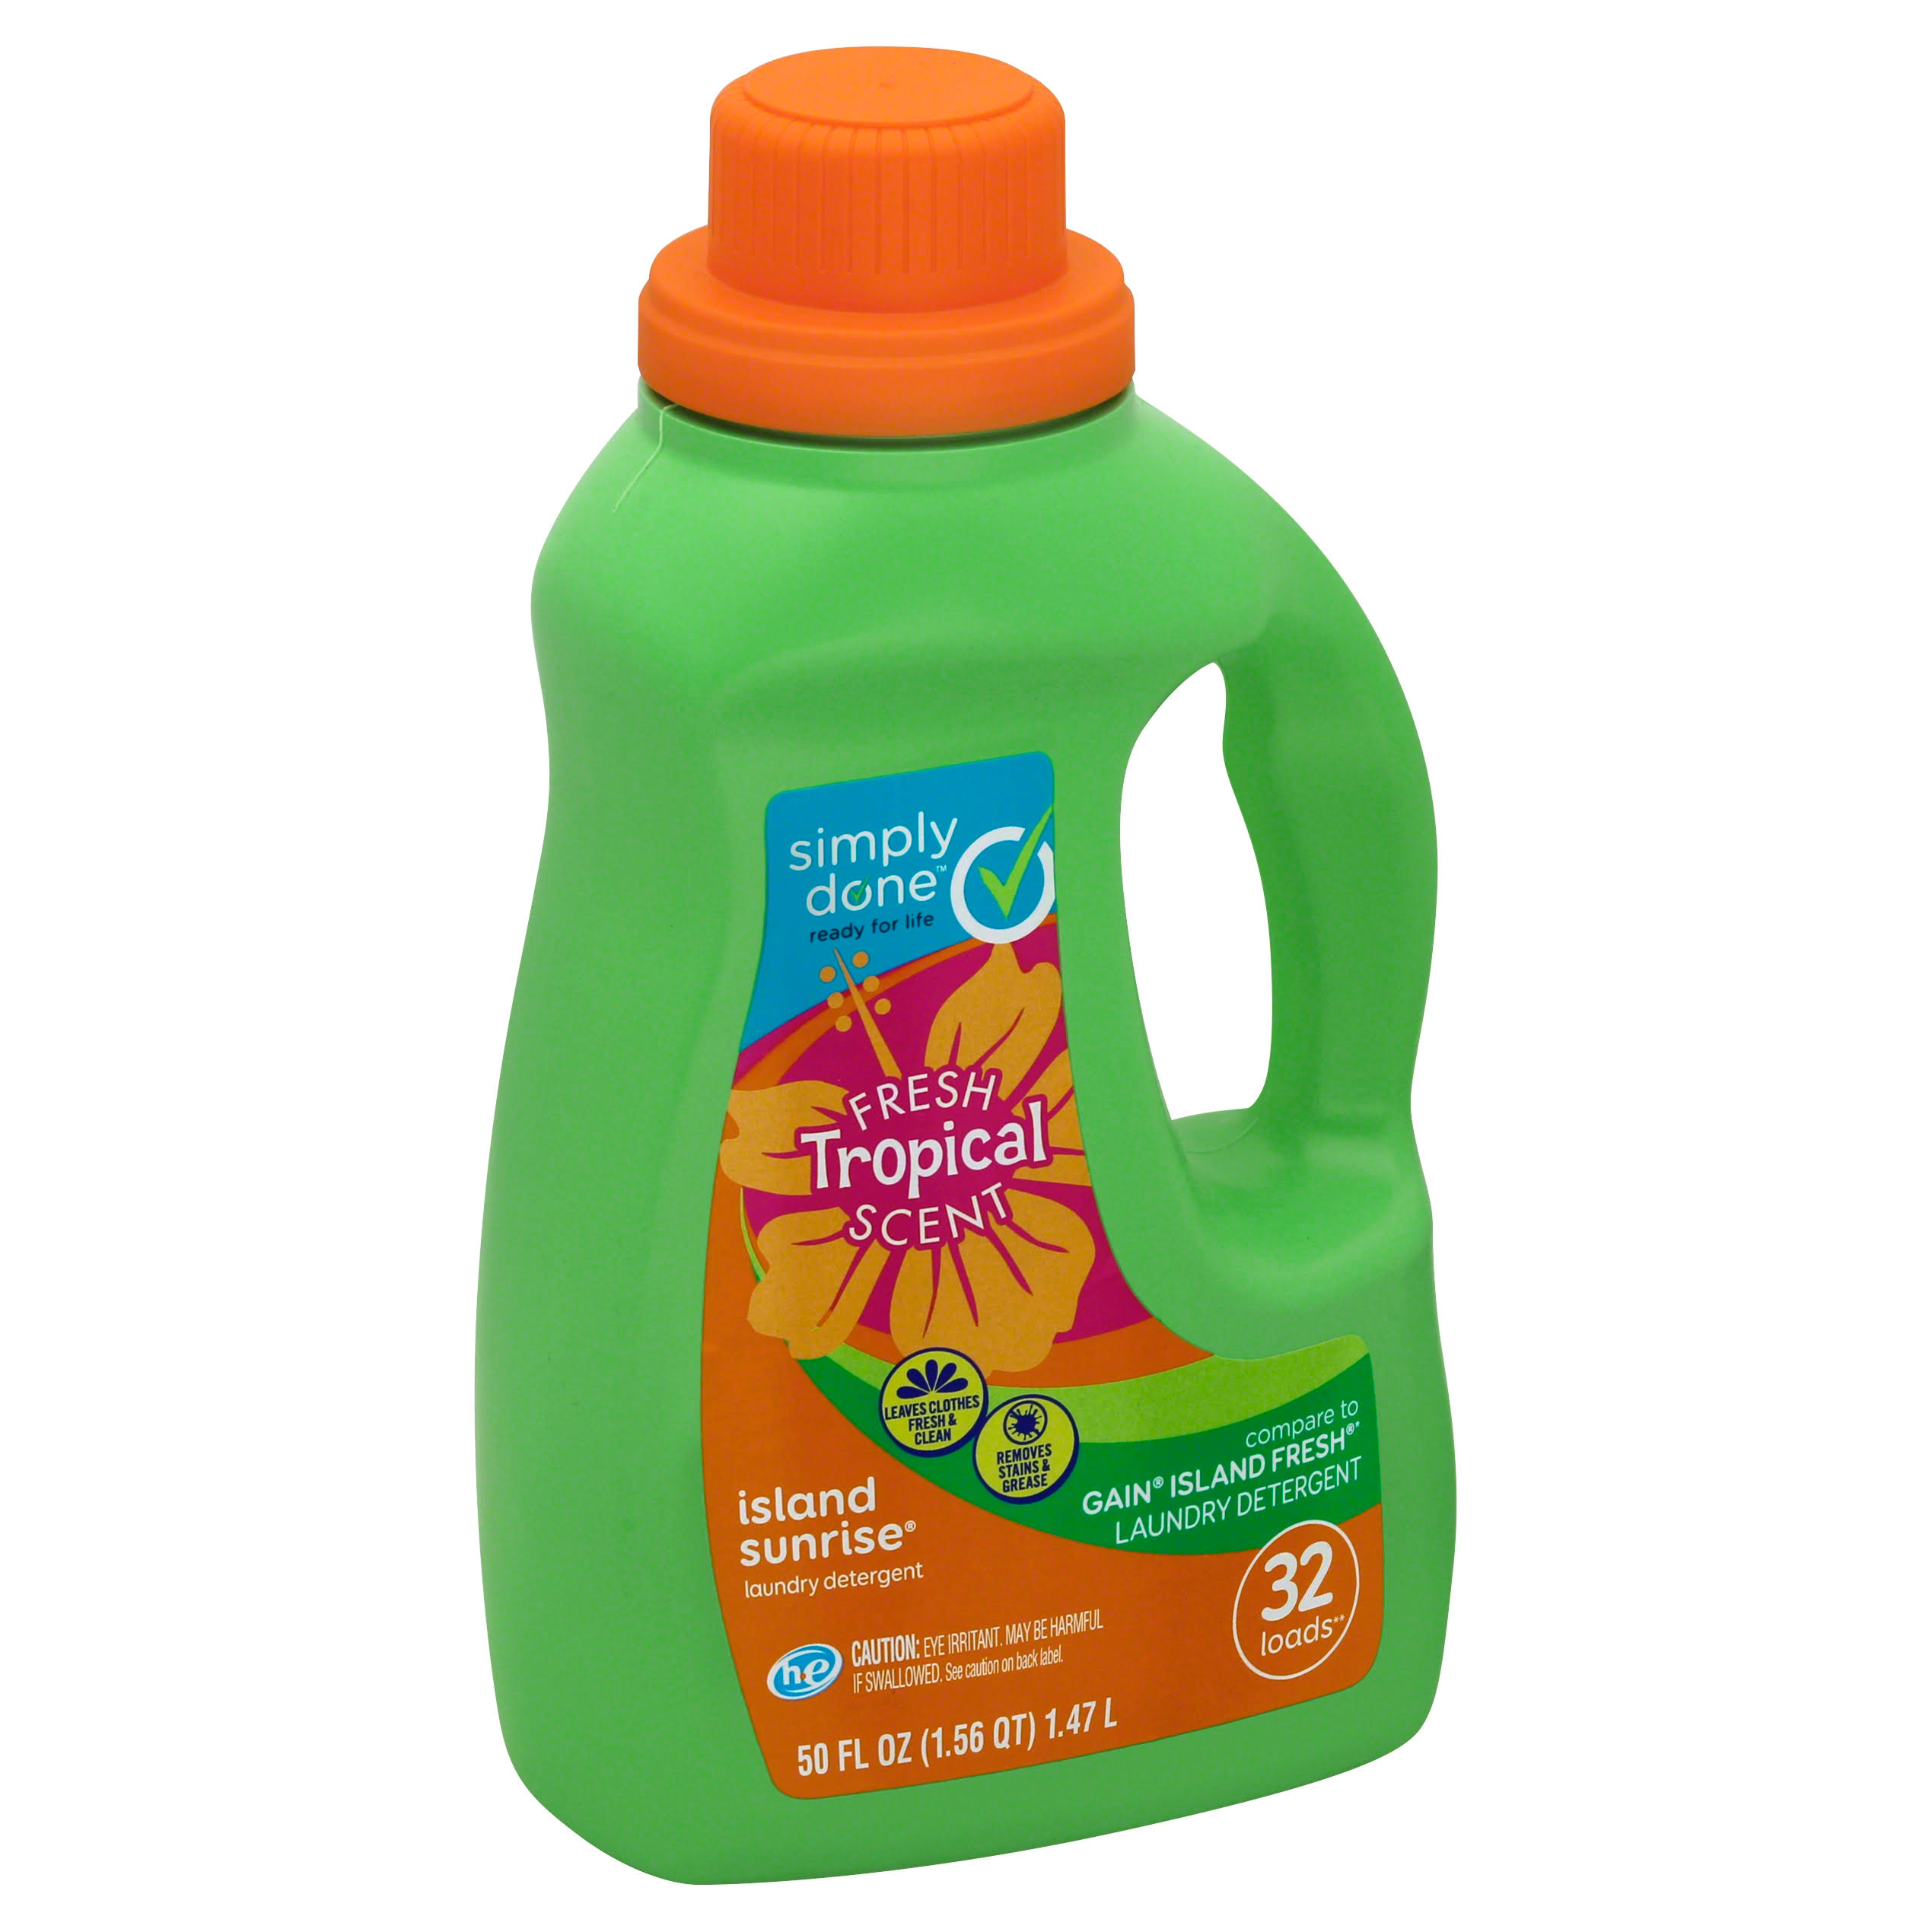 Simply Done Laundry Detergent, HE, Island Sunrise - 50 fl oz